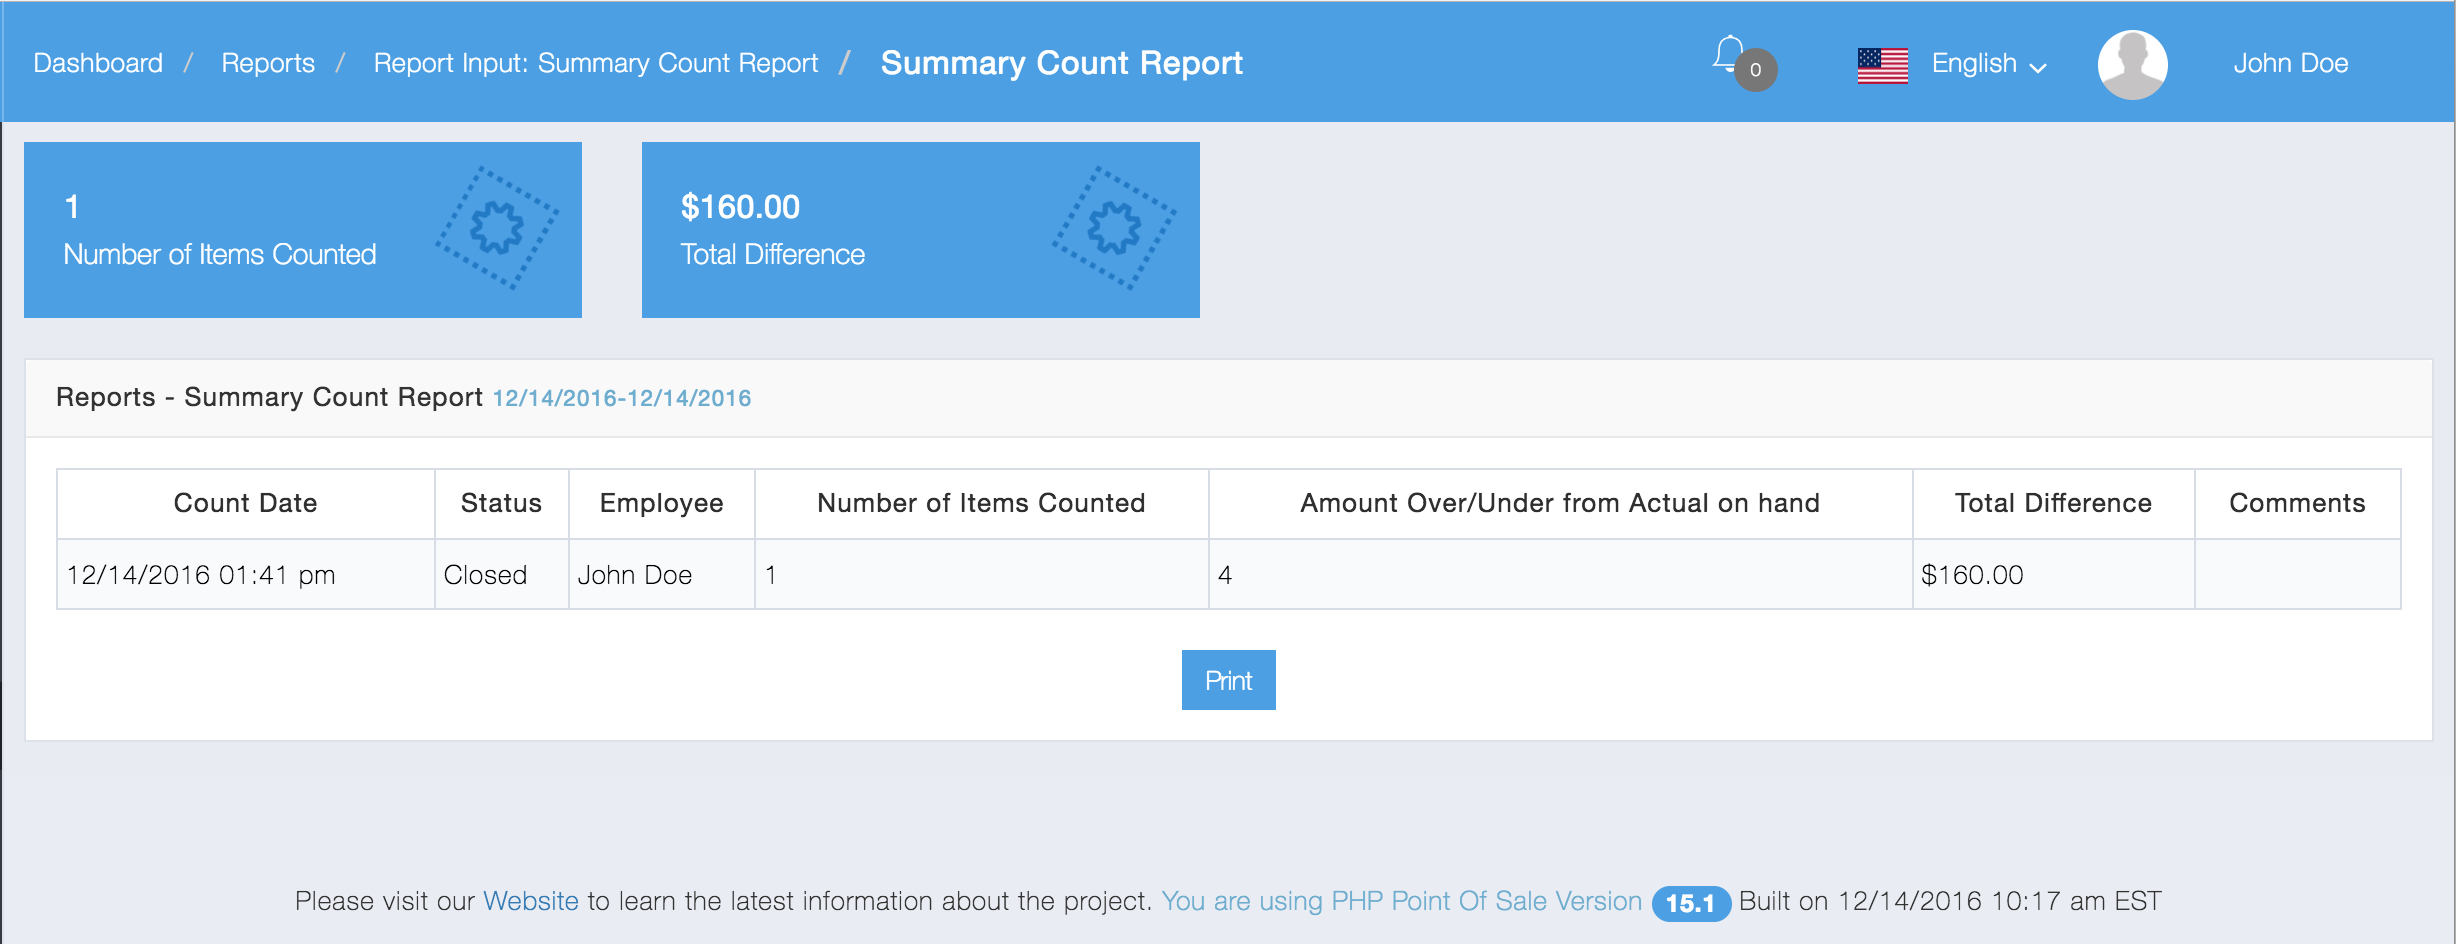 Summary Count Report